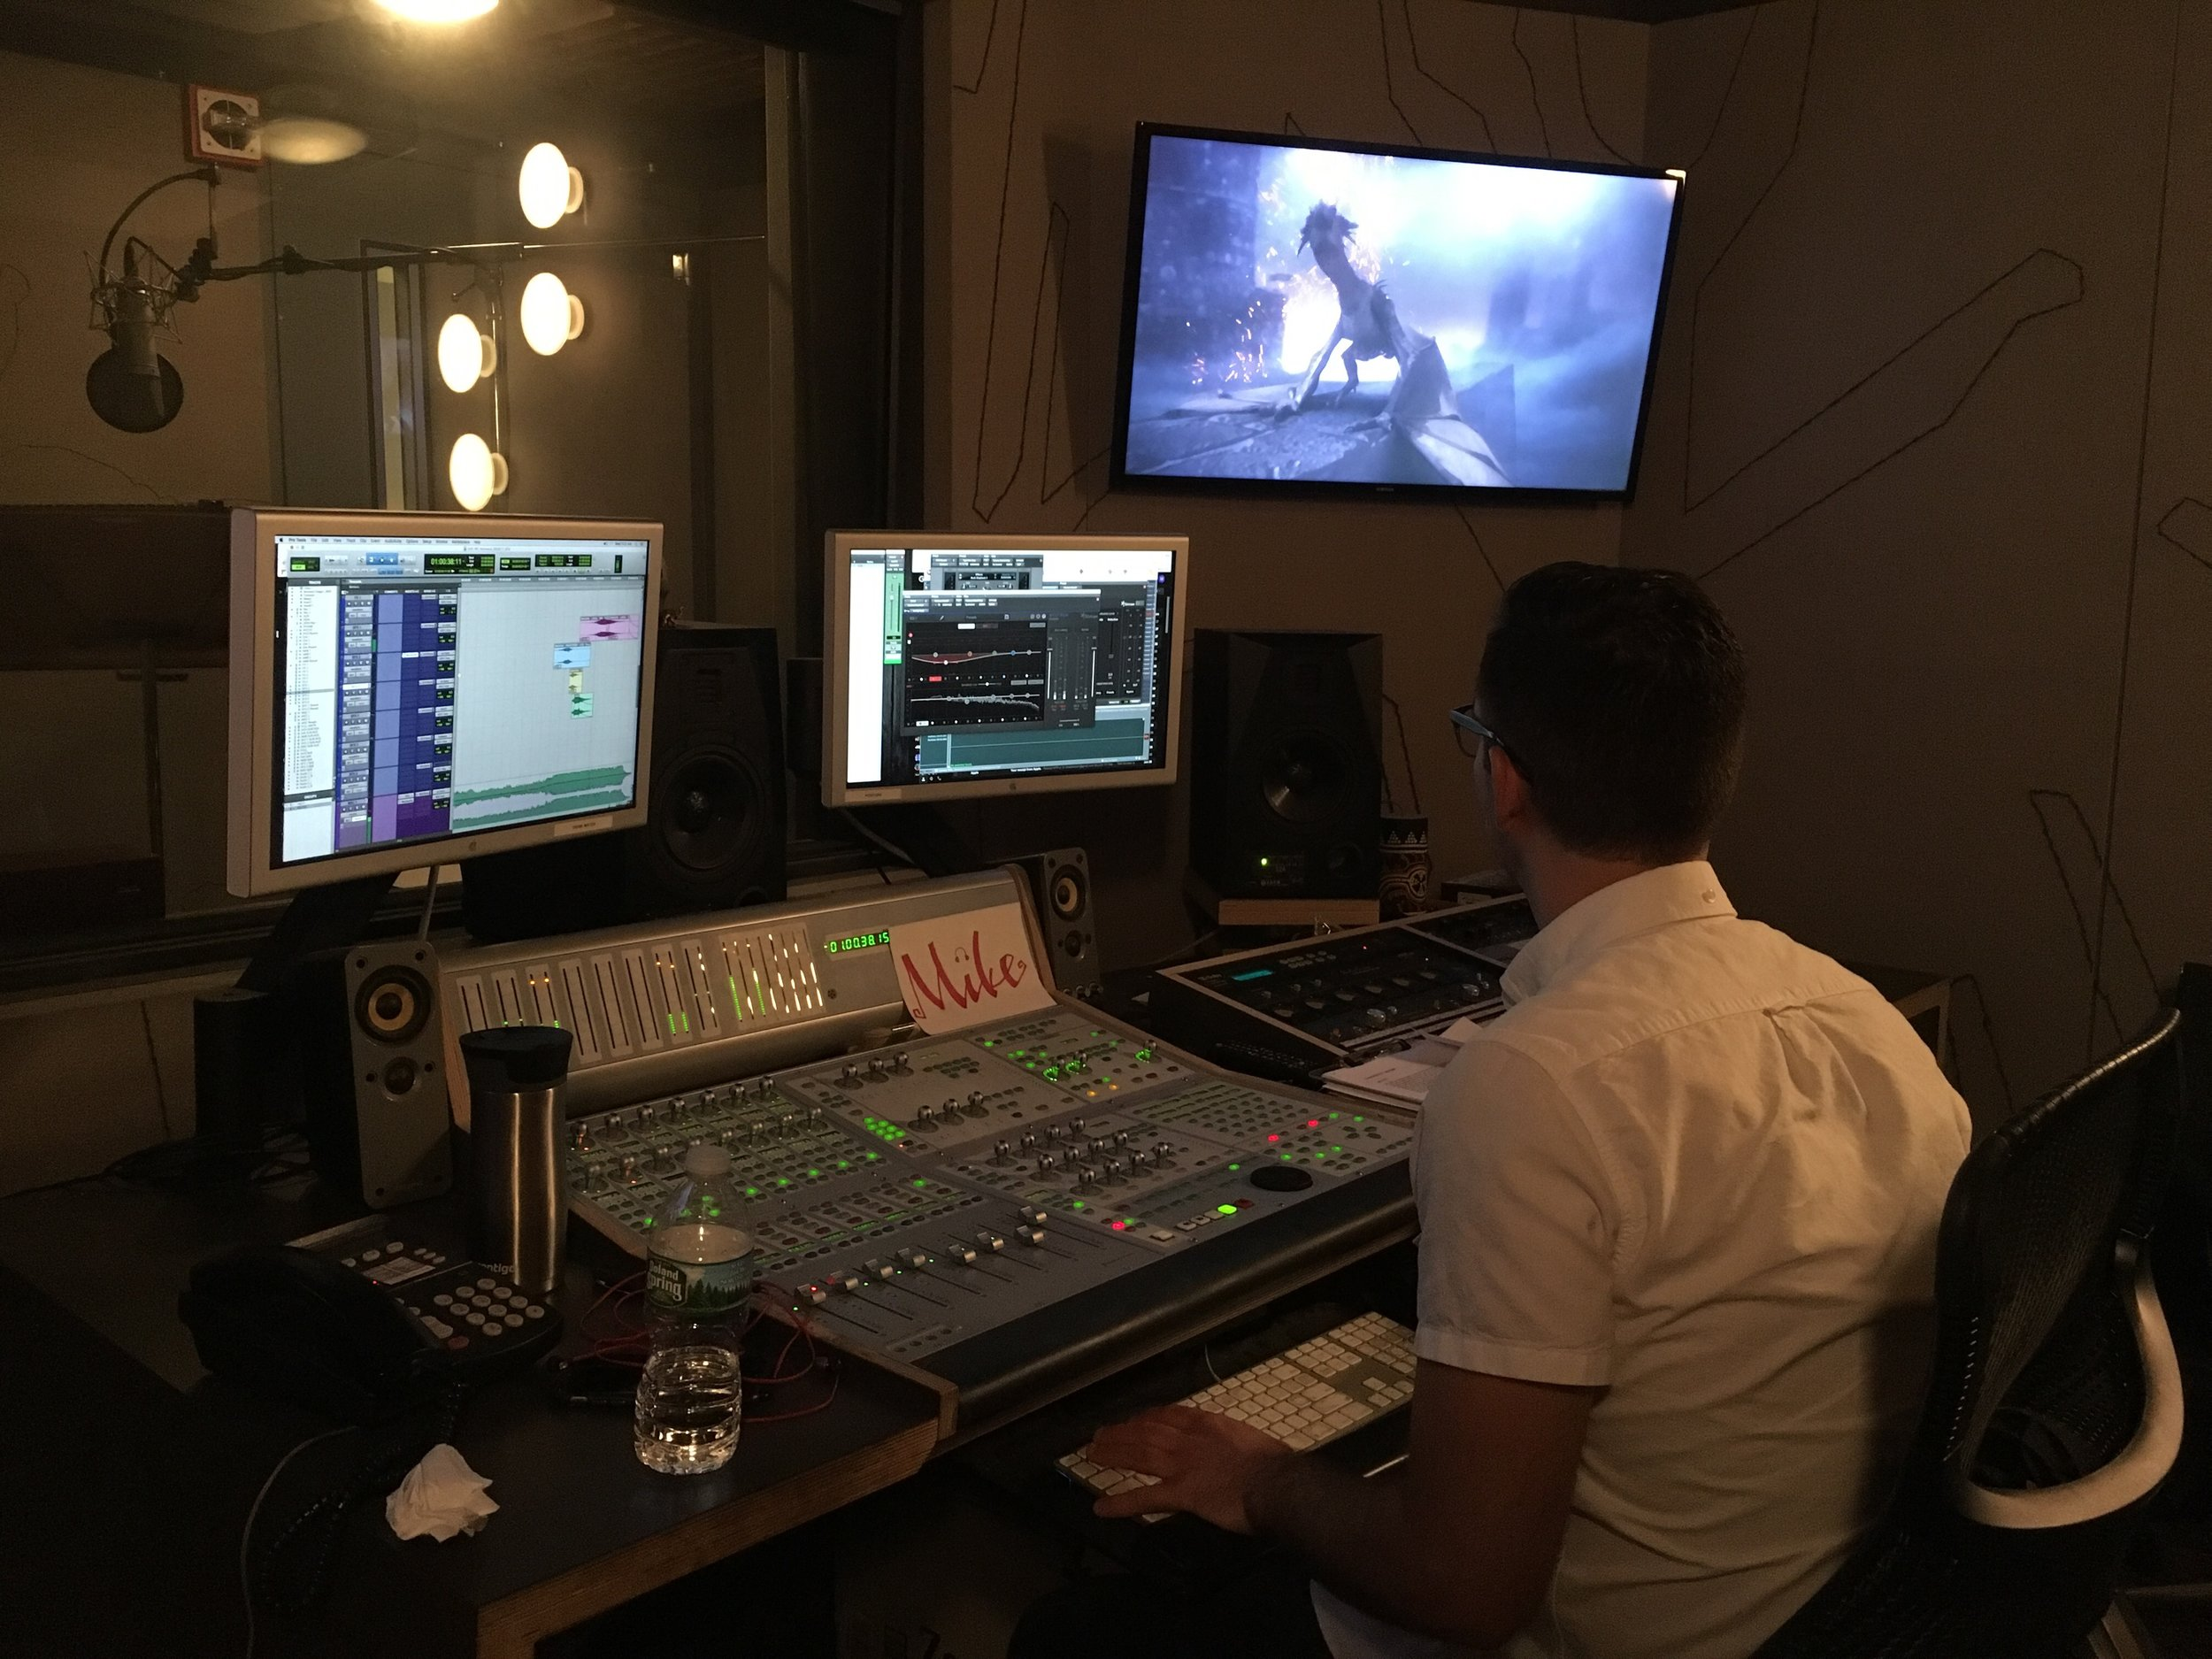 Final Audio Mix - Mike Jansson took this project to another level with some sound design and a final mix.